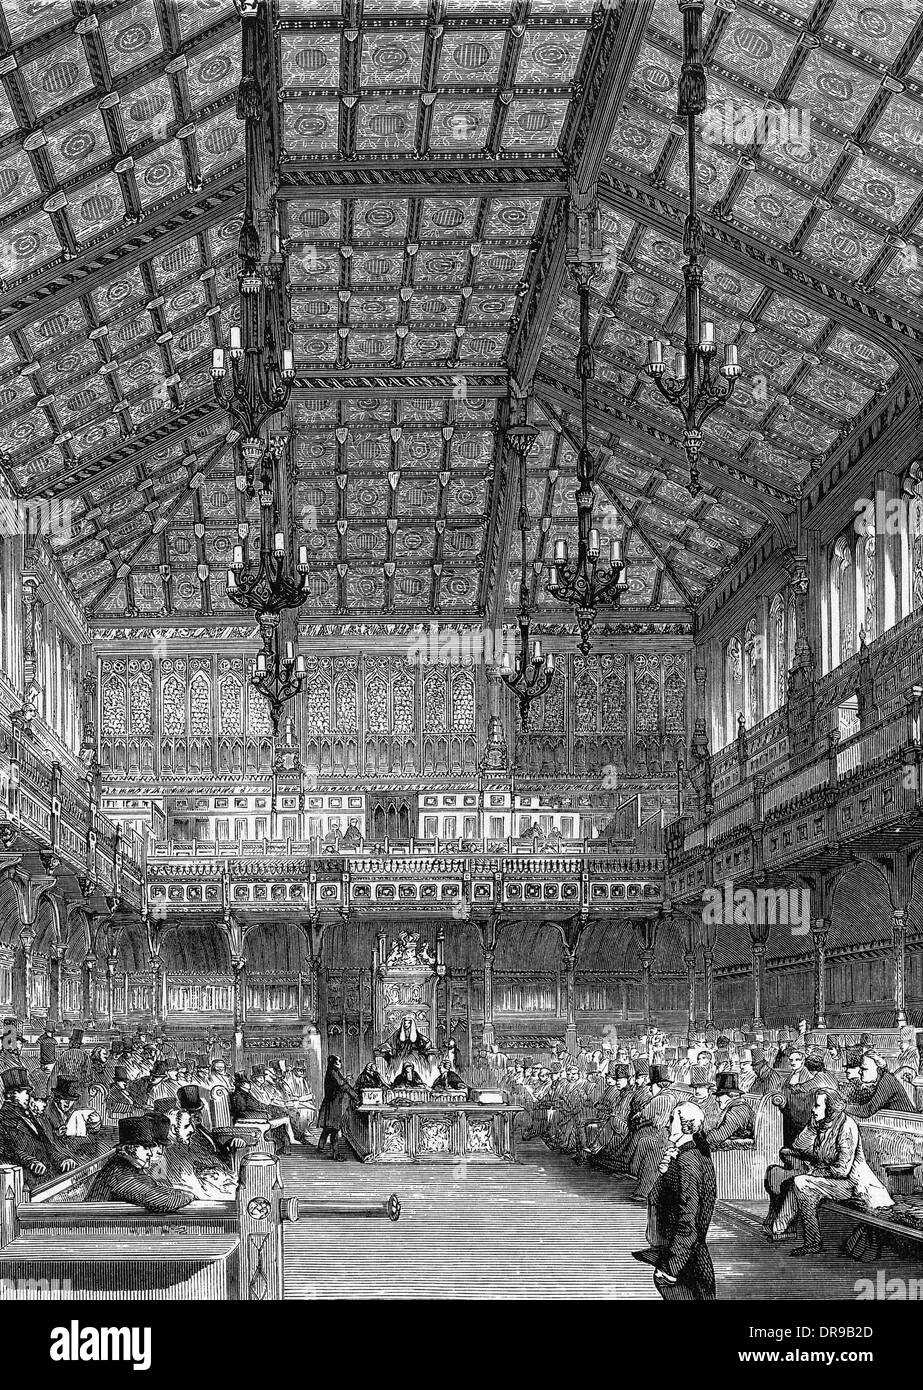 HOUSE OF COMMONS 1852 - Stock Image